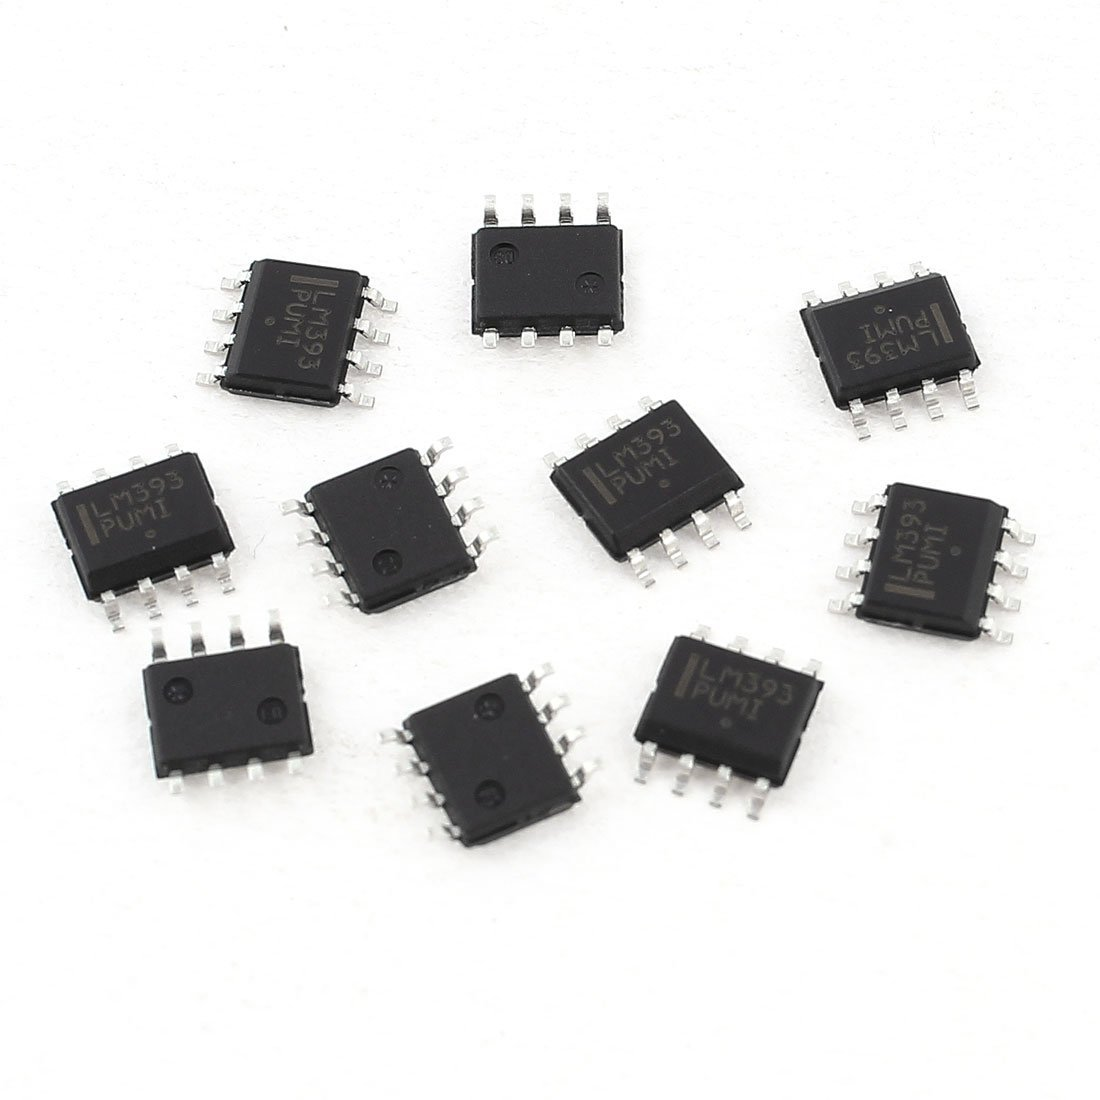 10 Pcs LM393 SOP-8 8Pin SMD Dual Voltage Comparator IC